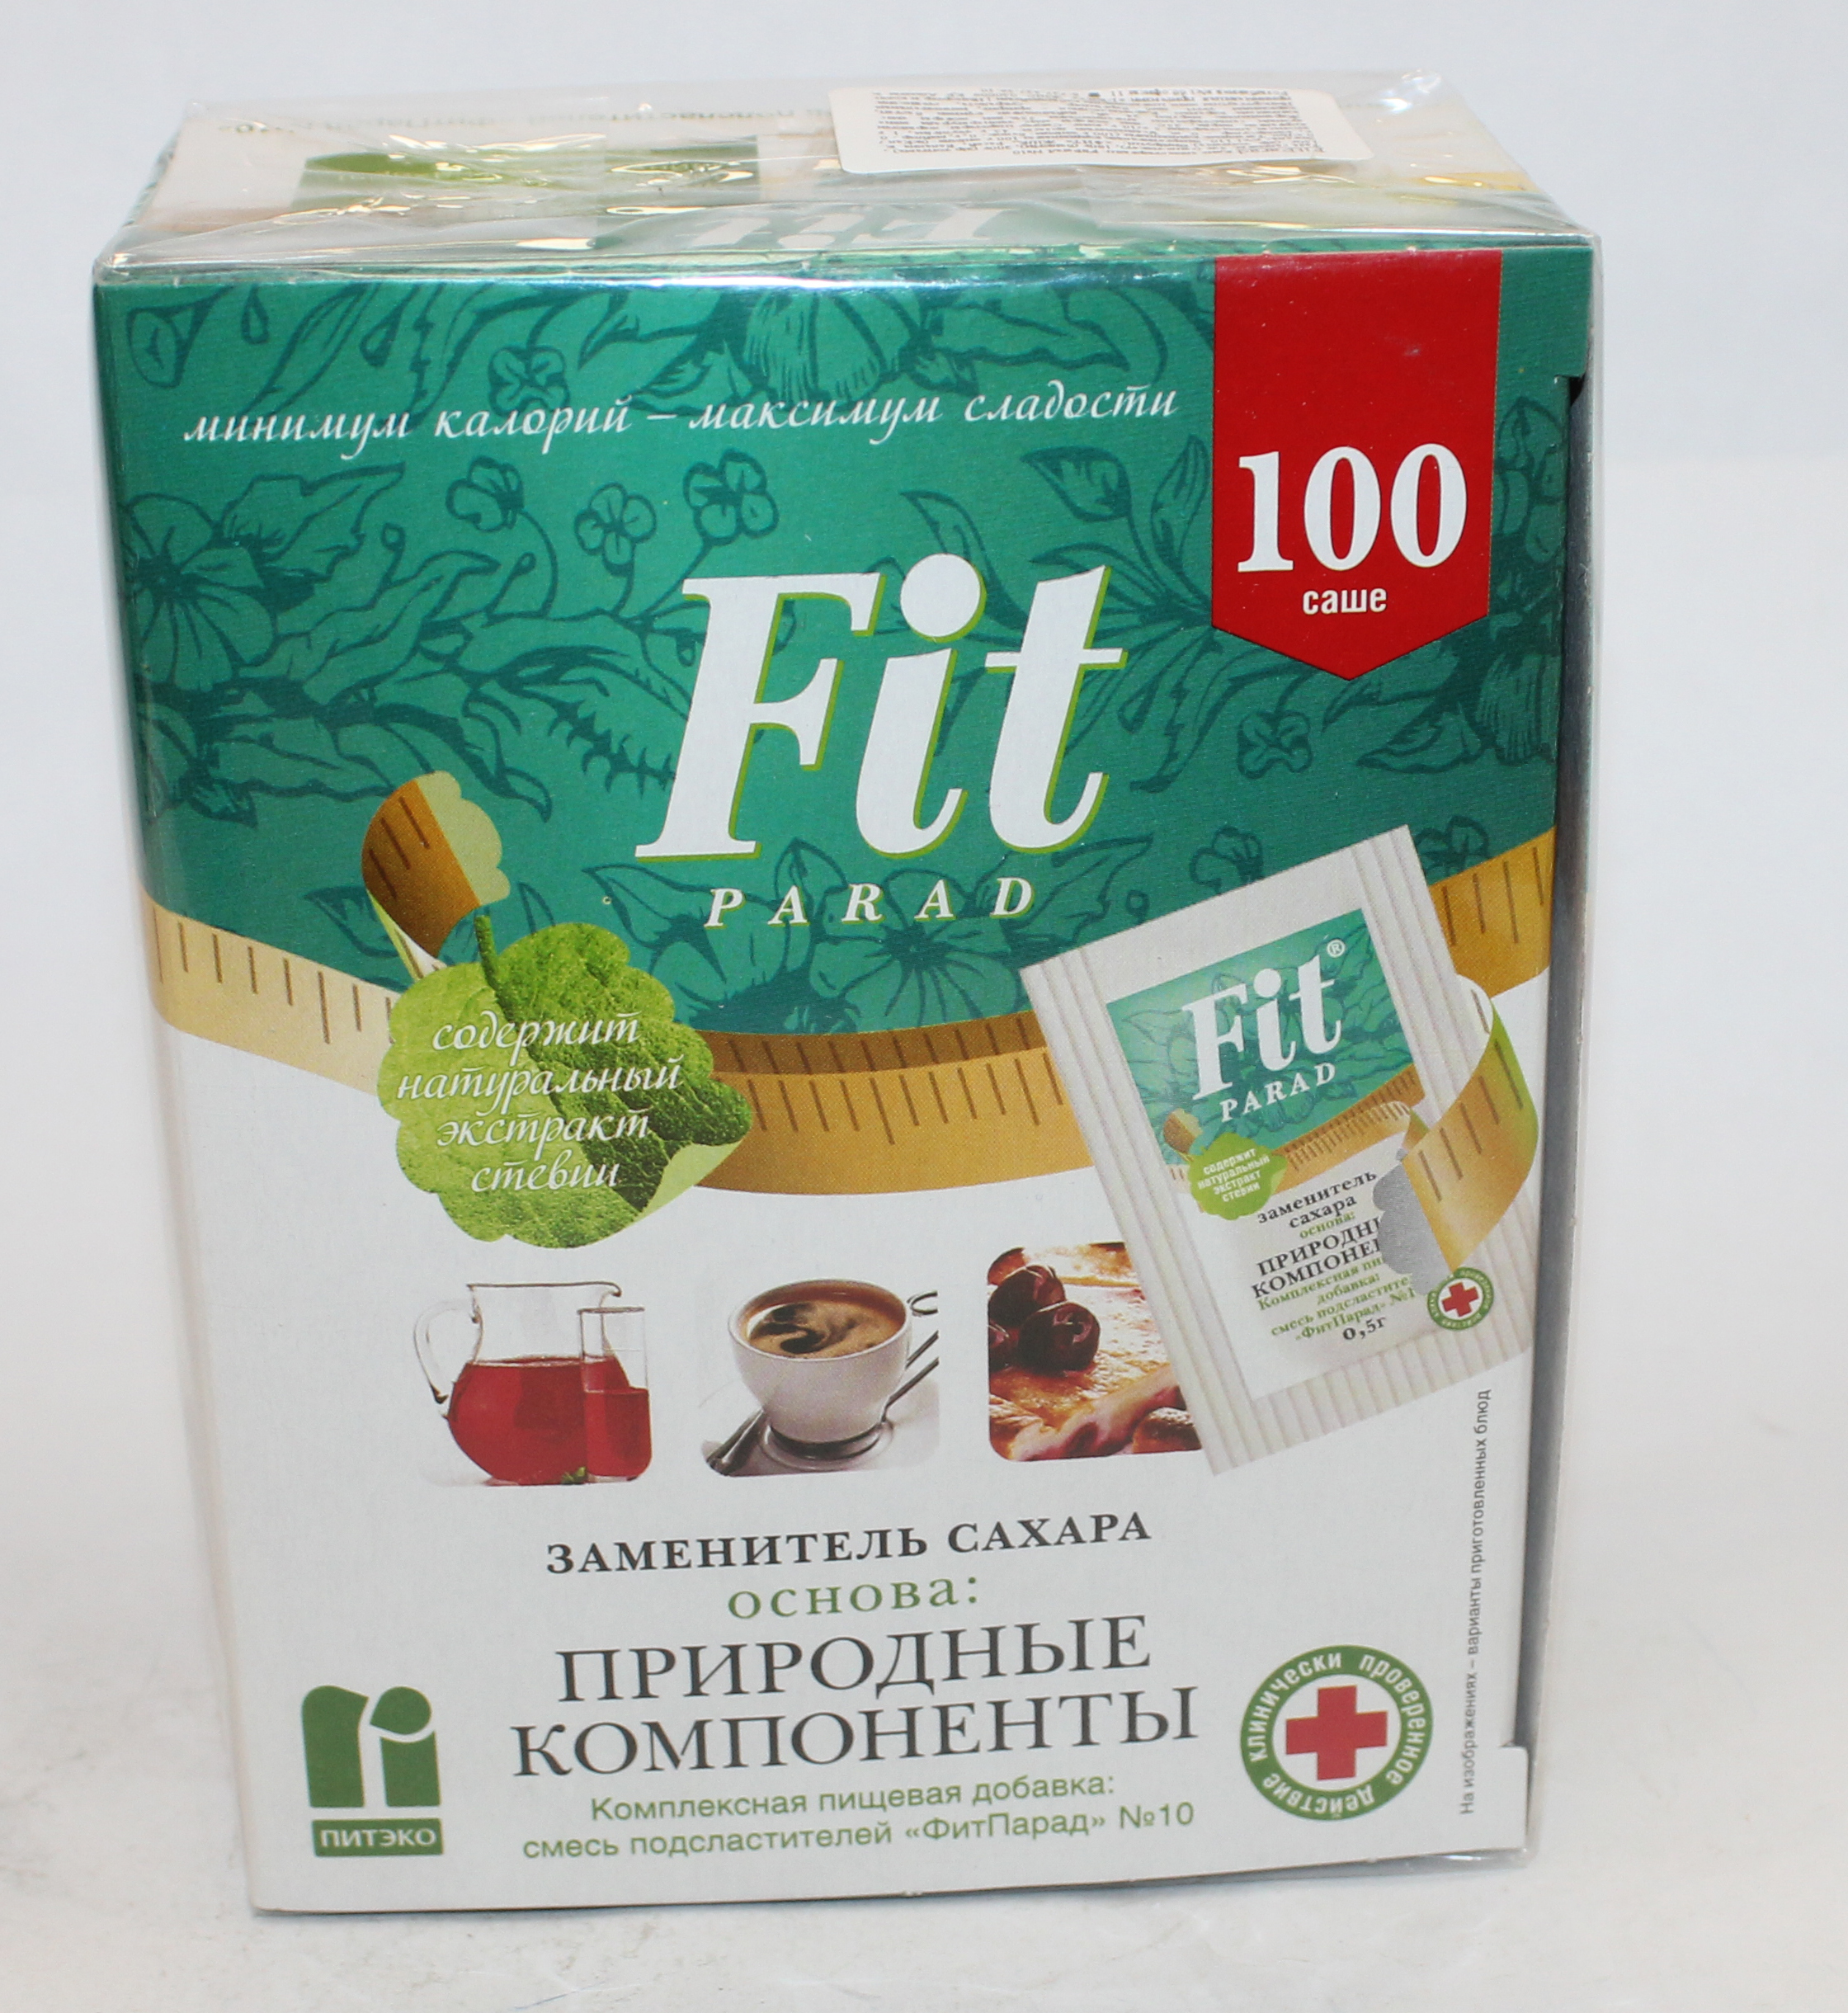 FIT - ЗАМ.САХАРА FIT 50гр 100саше ПРИР/КОМПОНЕНТЫ 4680002312293